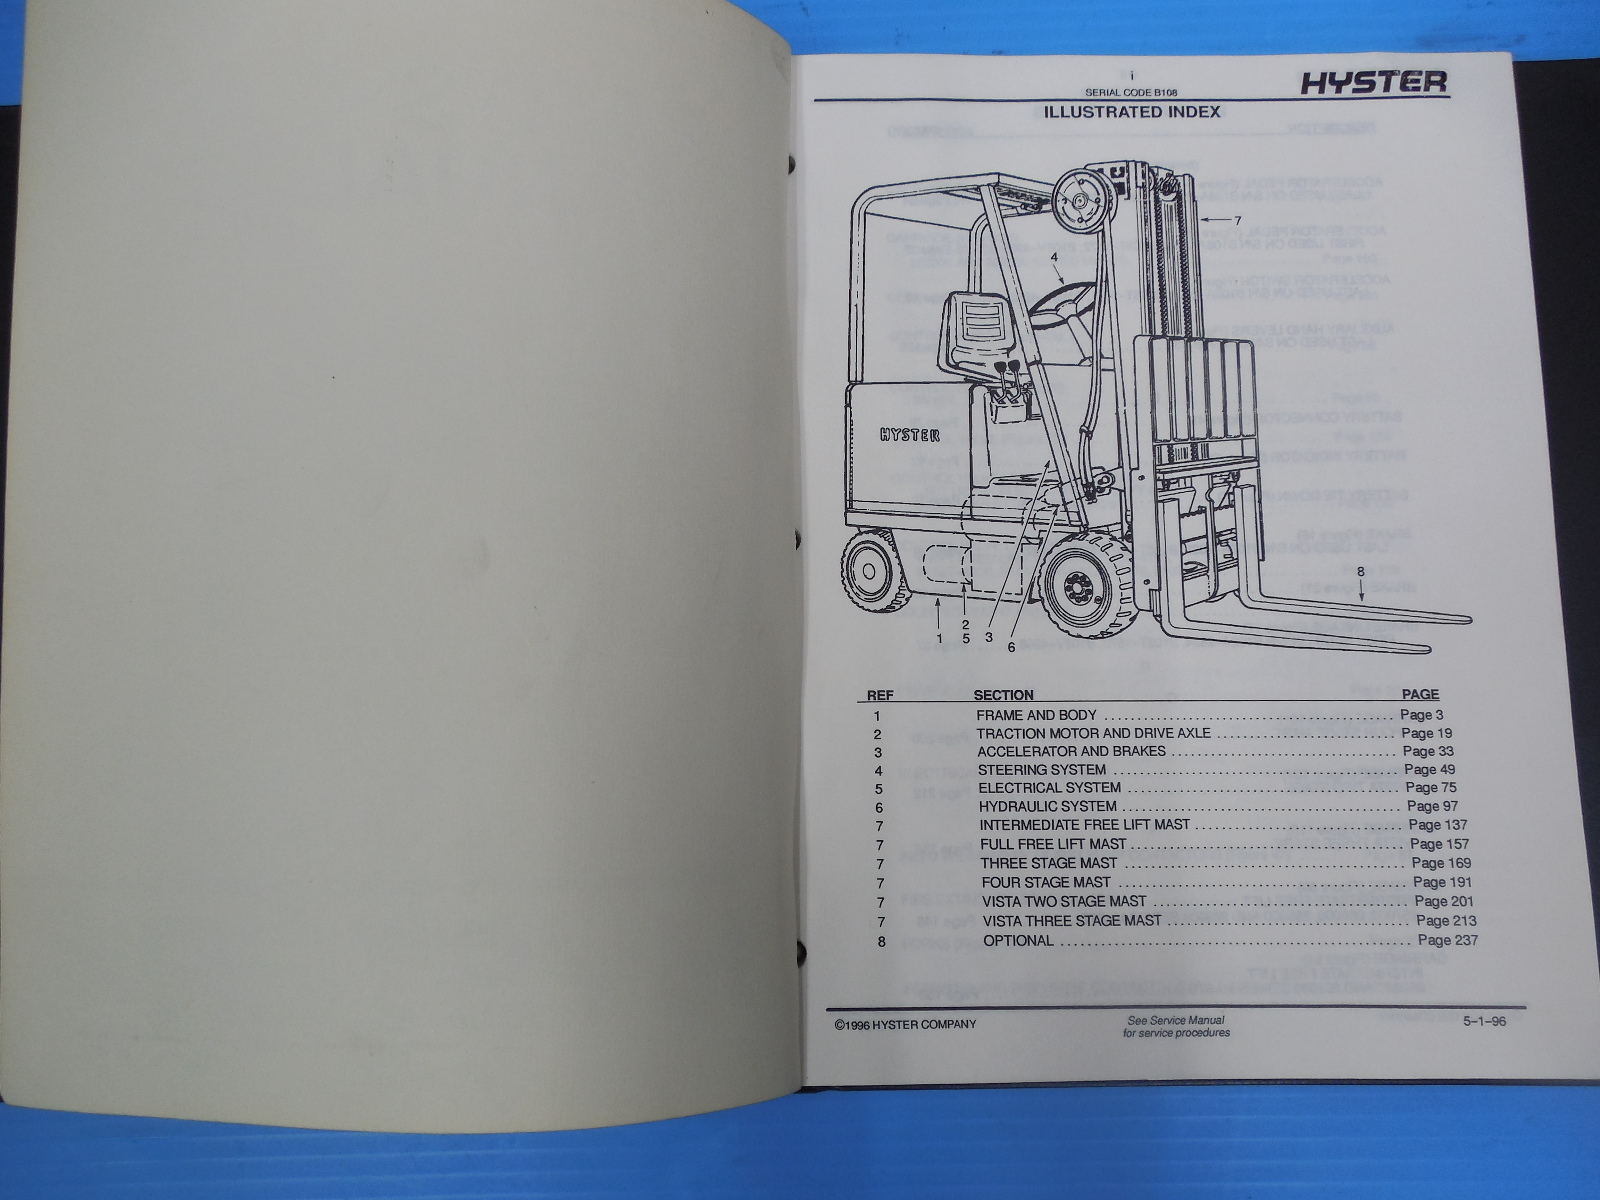 Hyster Parts Manual Carrier Bryant Payne Furnace Fan Blower Control Circuit Board Ebay Array E30 40 50b Electric Lift Truck Specifications Rh Com